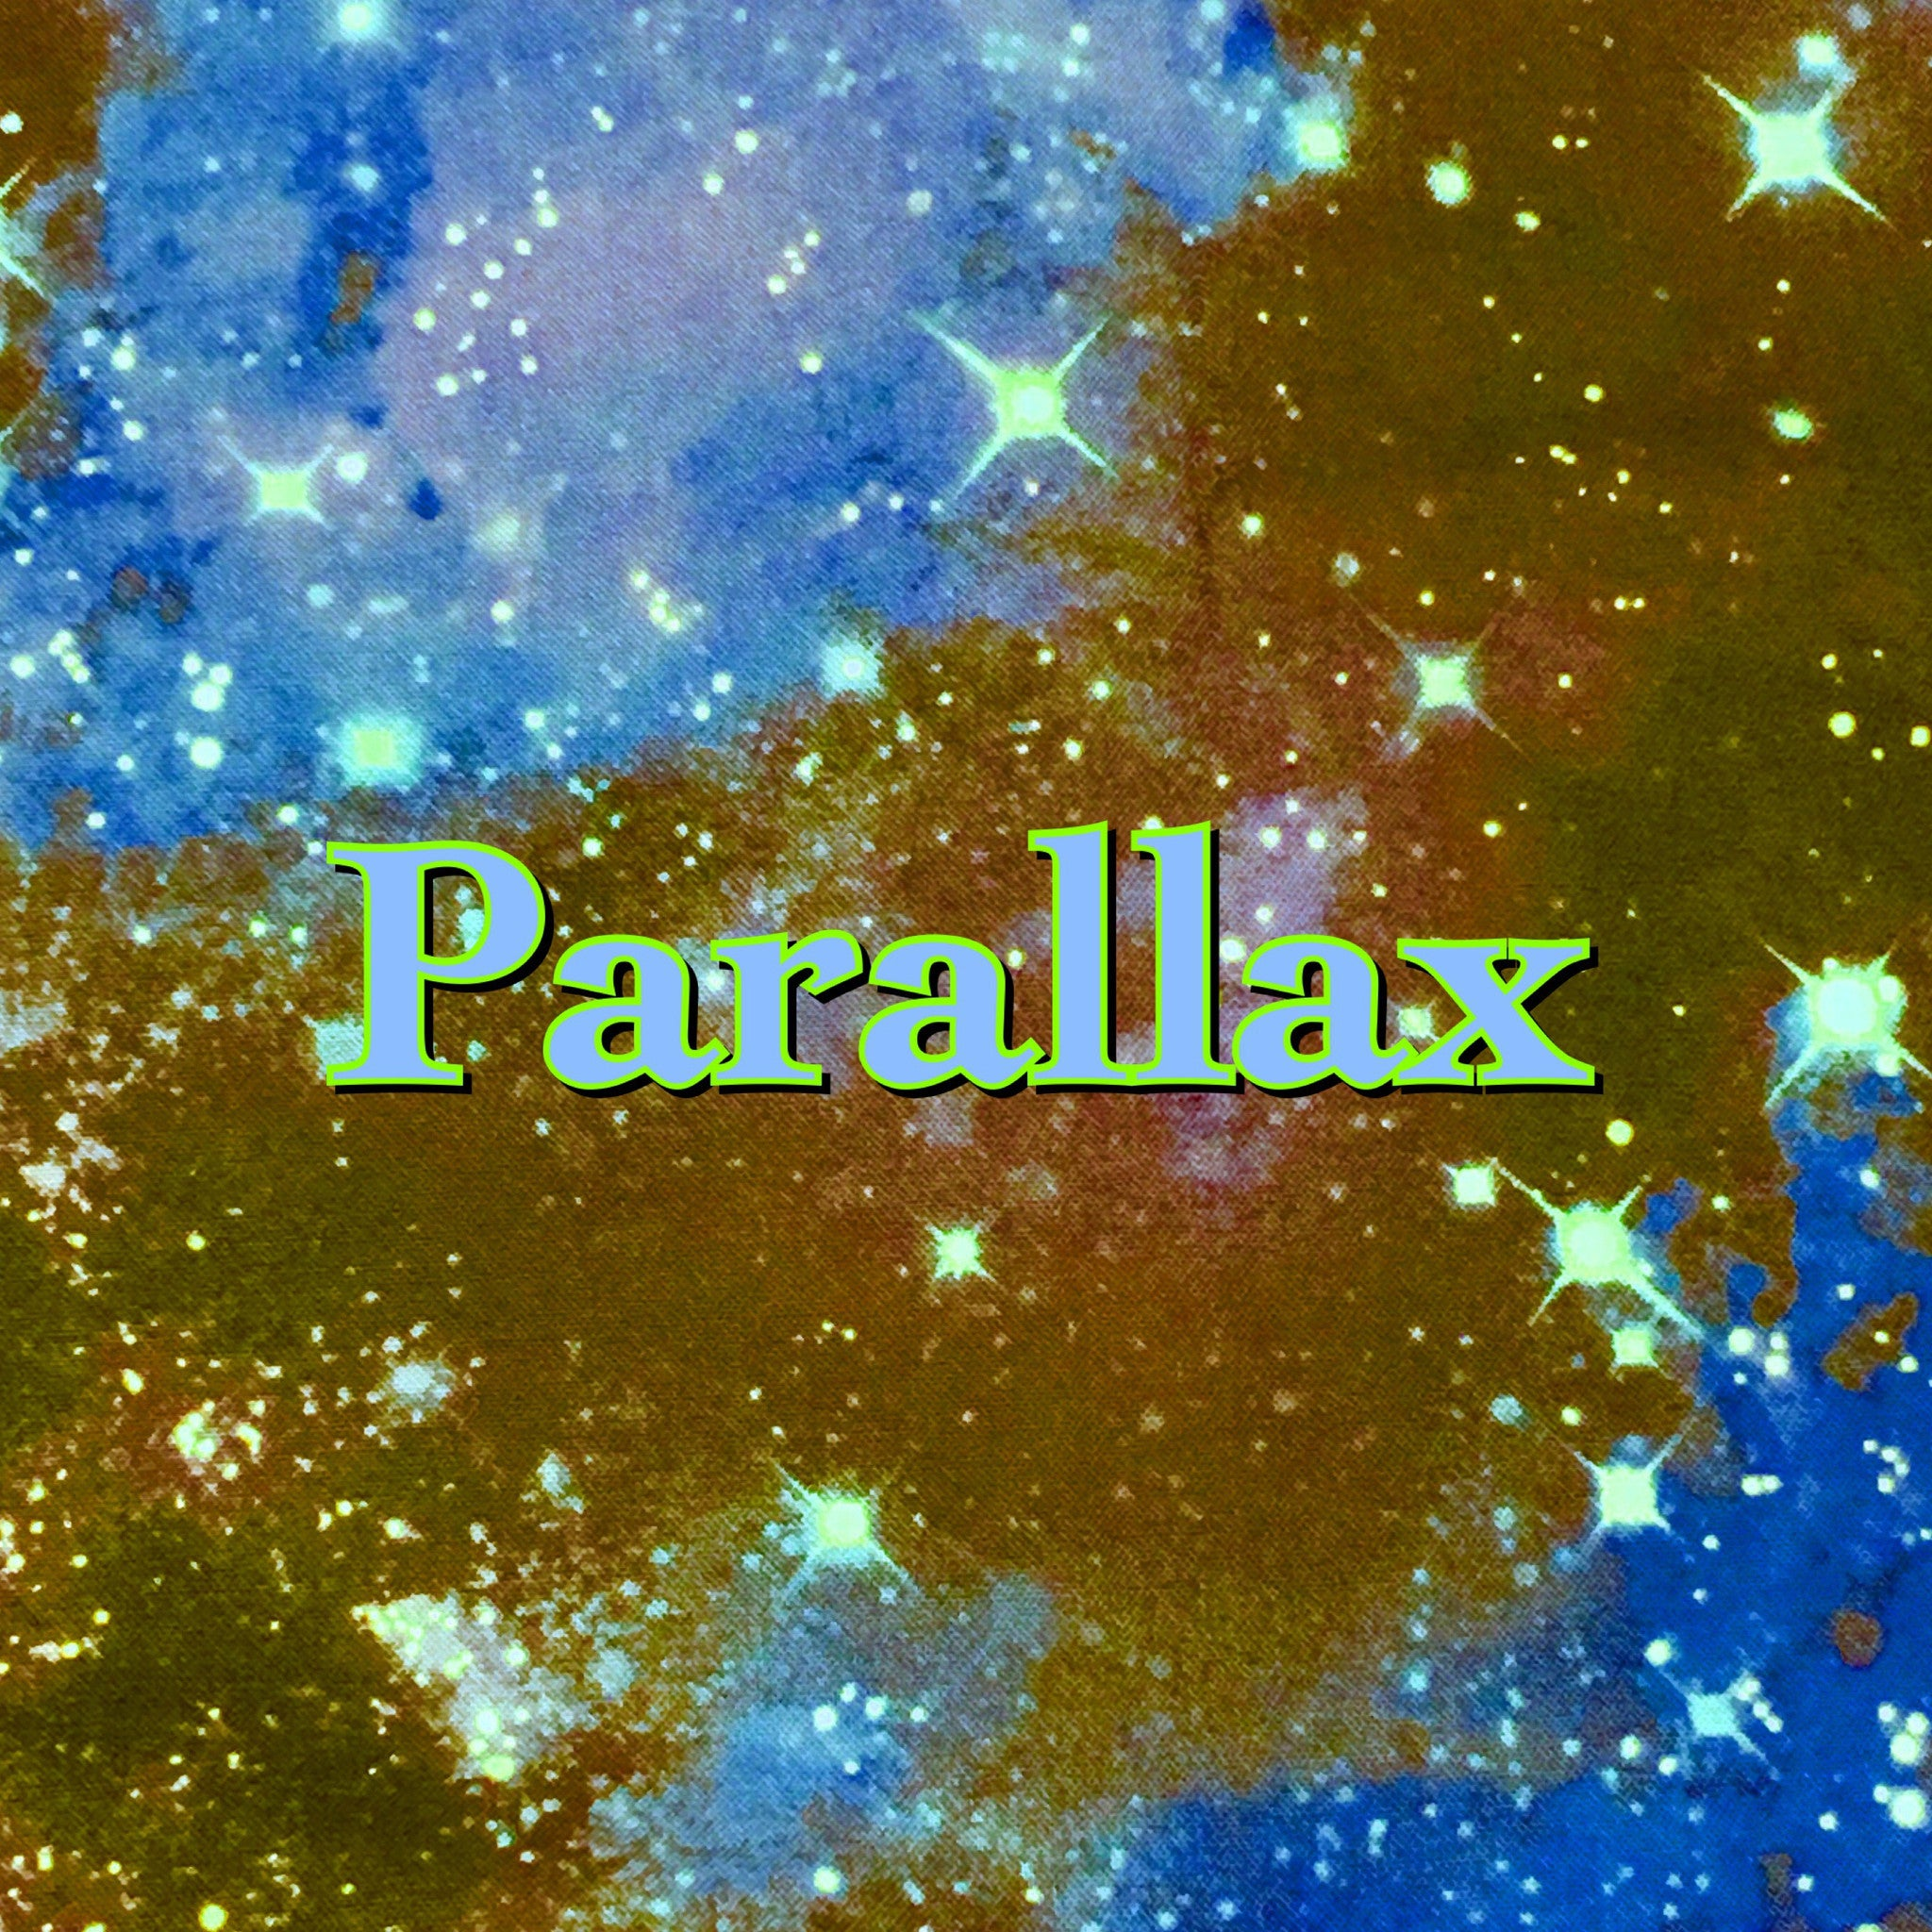 Parallax - Quilter's Cotton Featuring Glow in the Dark Snaps!